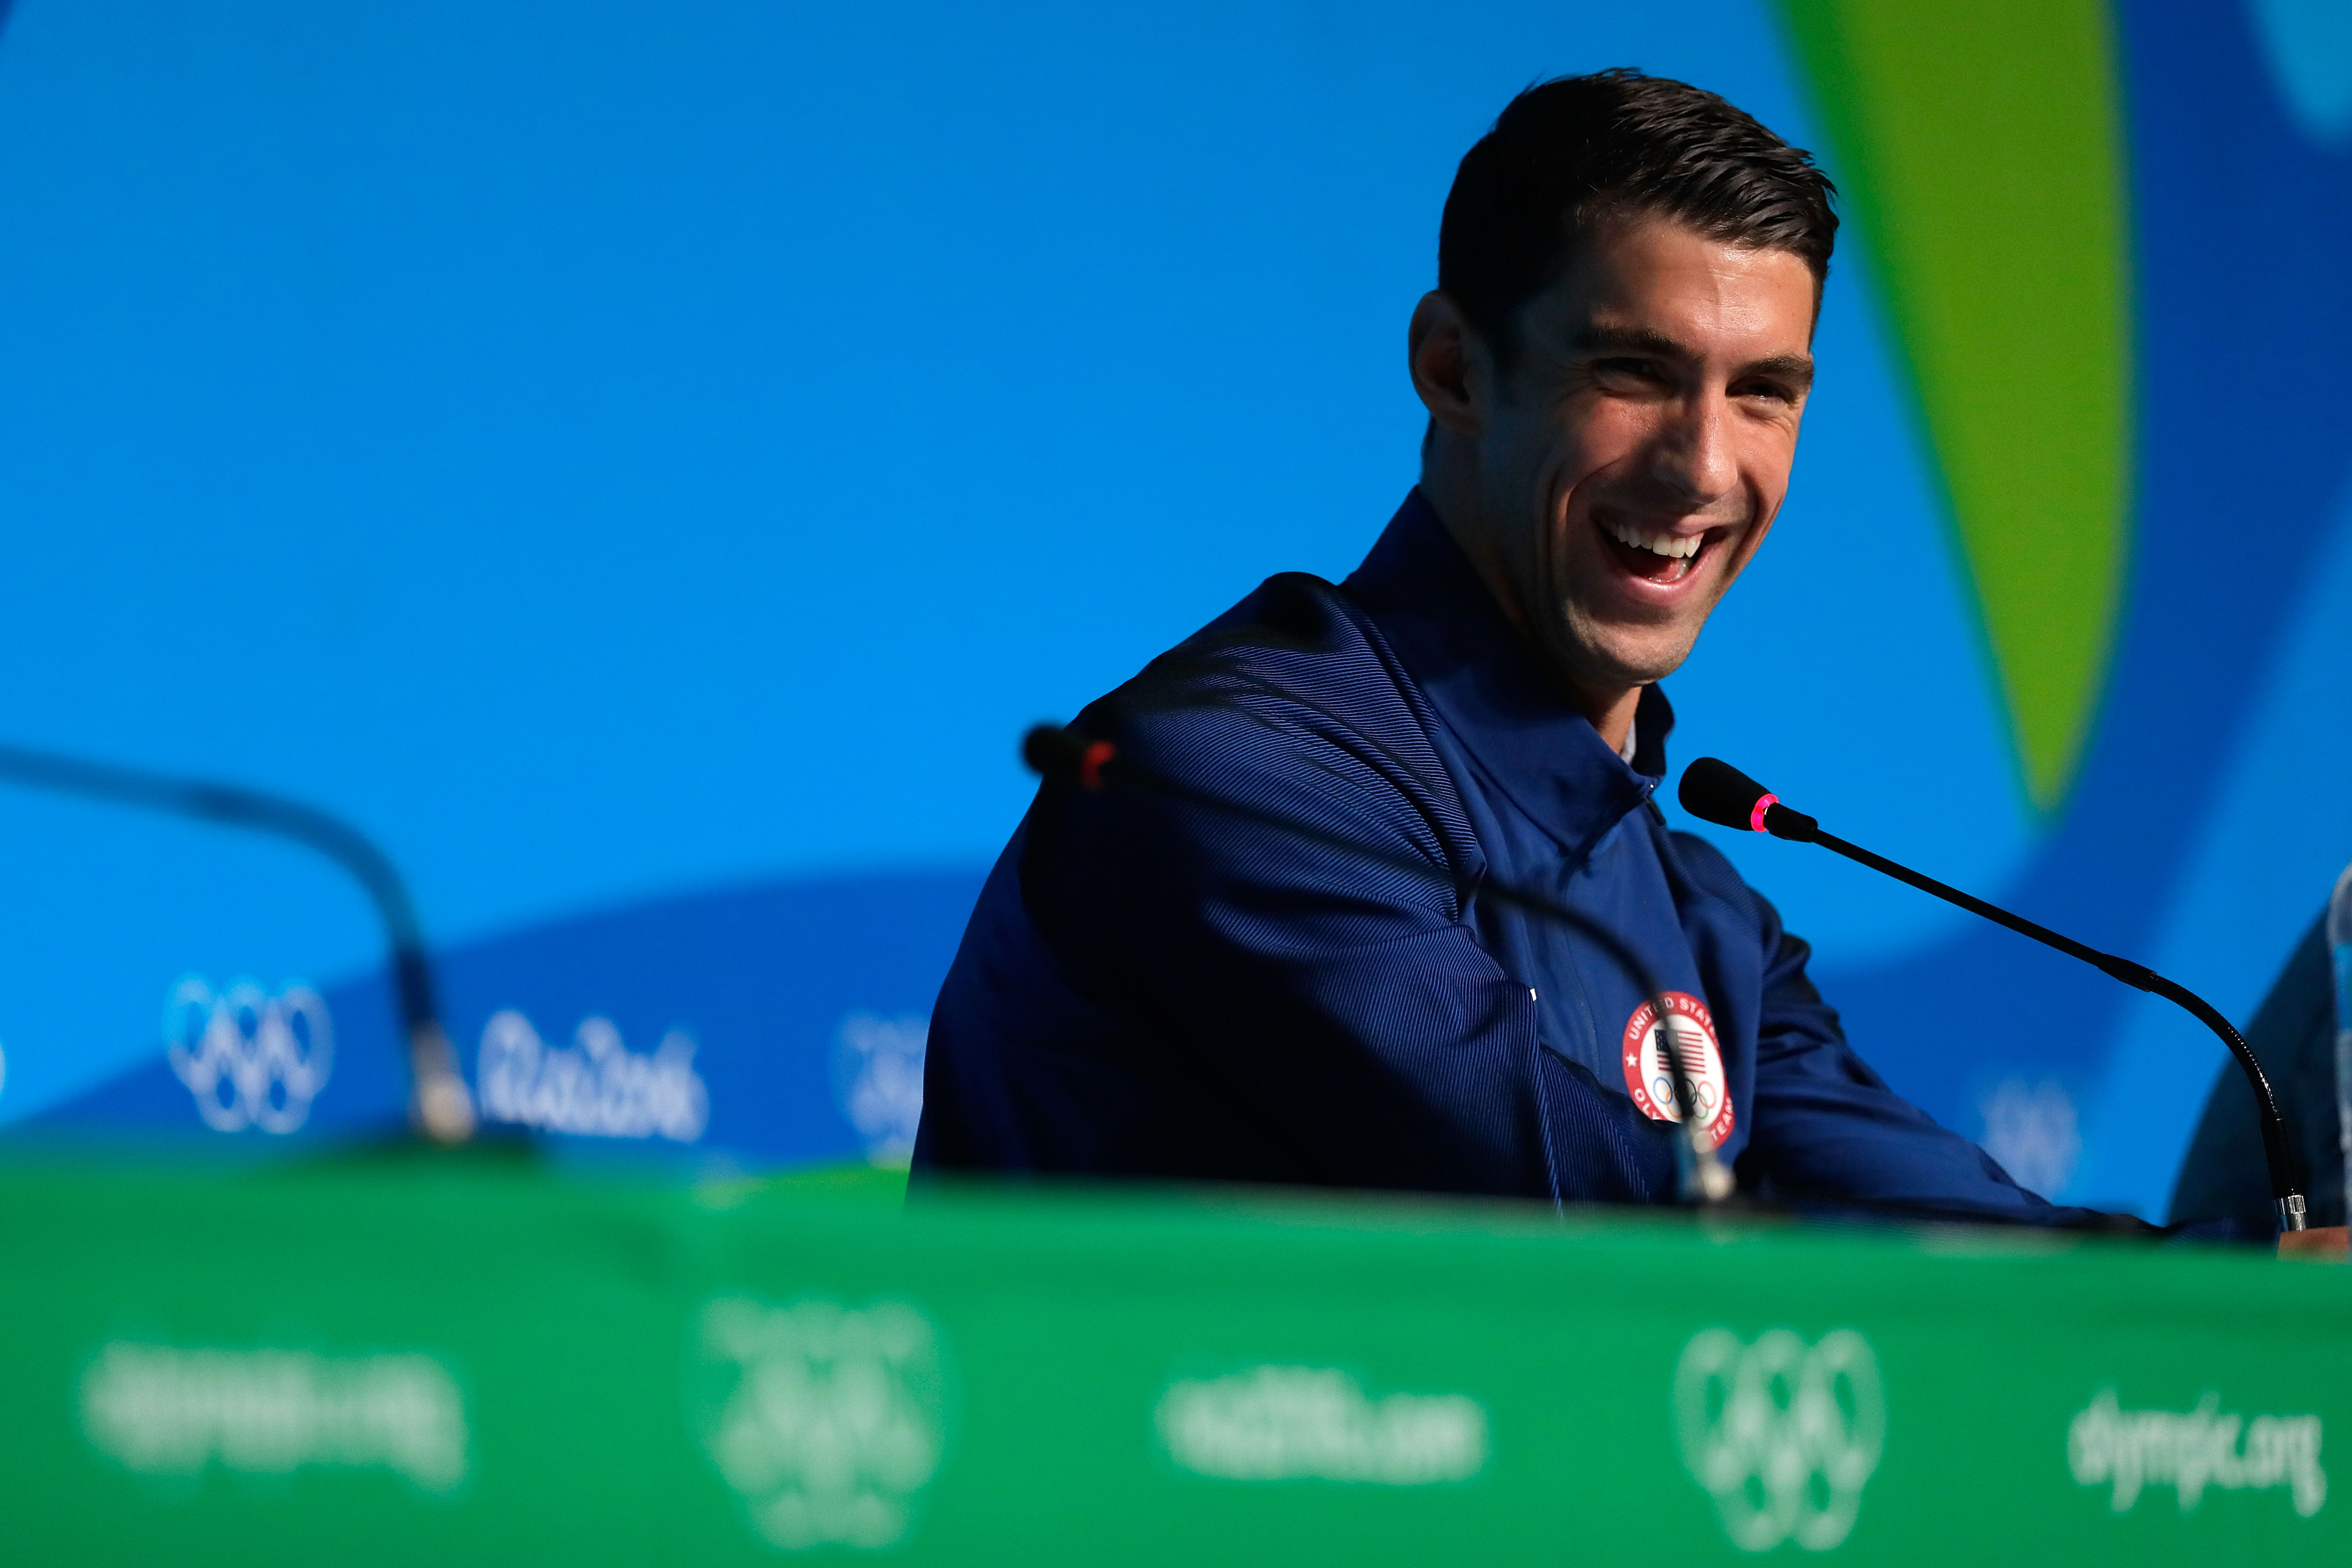 Michael Phelps of the United States speaks during a press conference at the Main Press Centre on August 14, 2016, in Rio de Janeiro, Brazil.